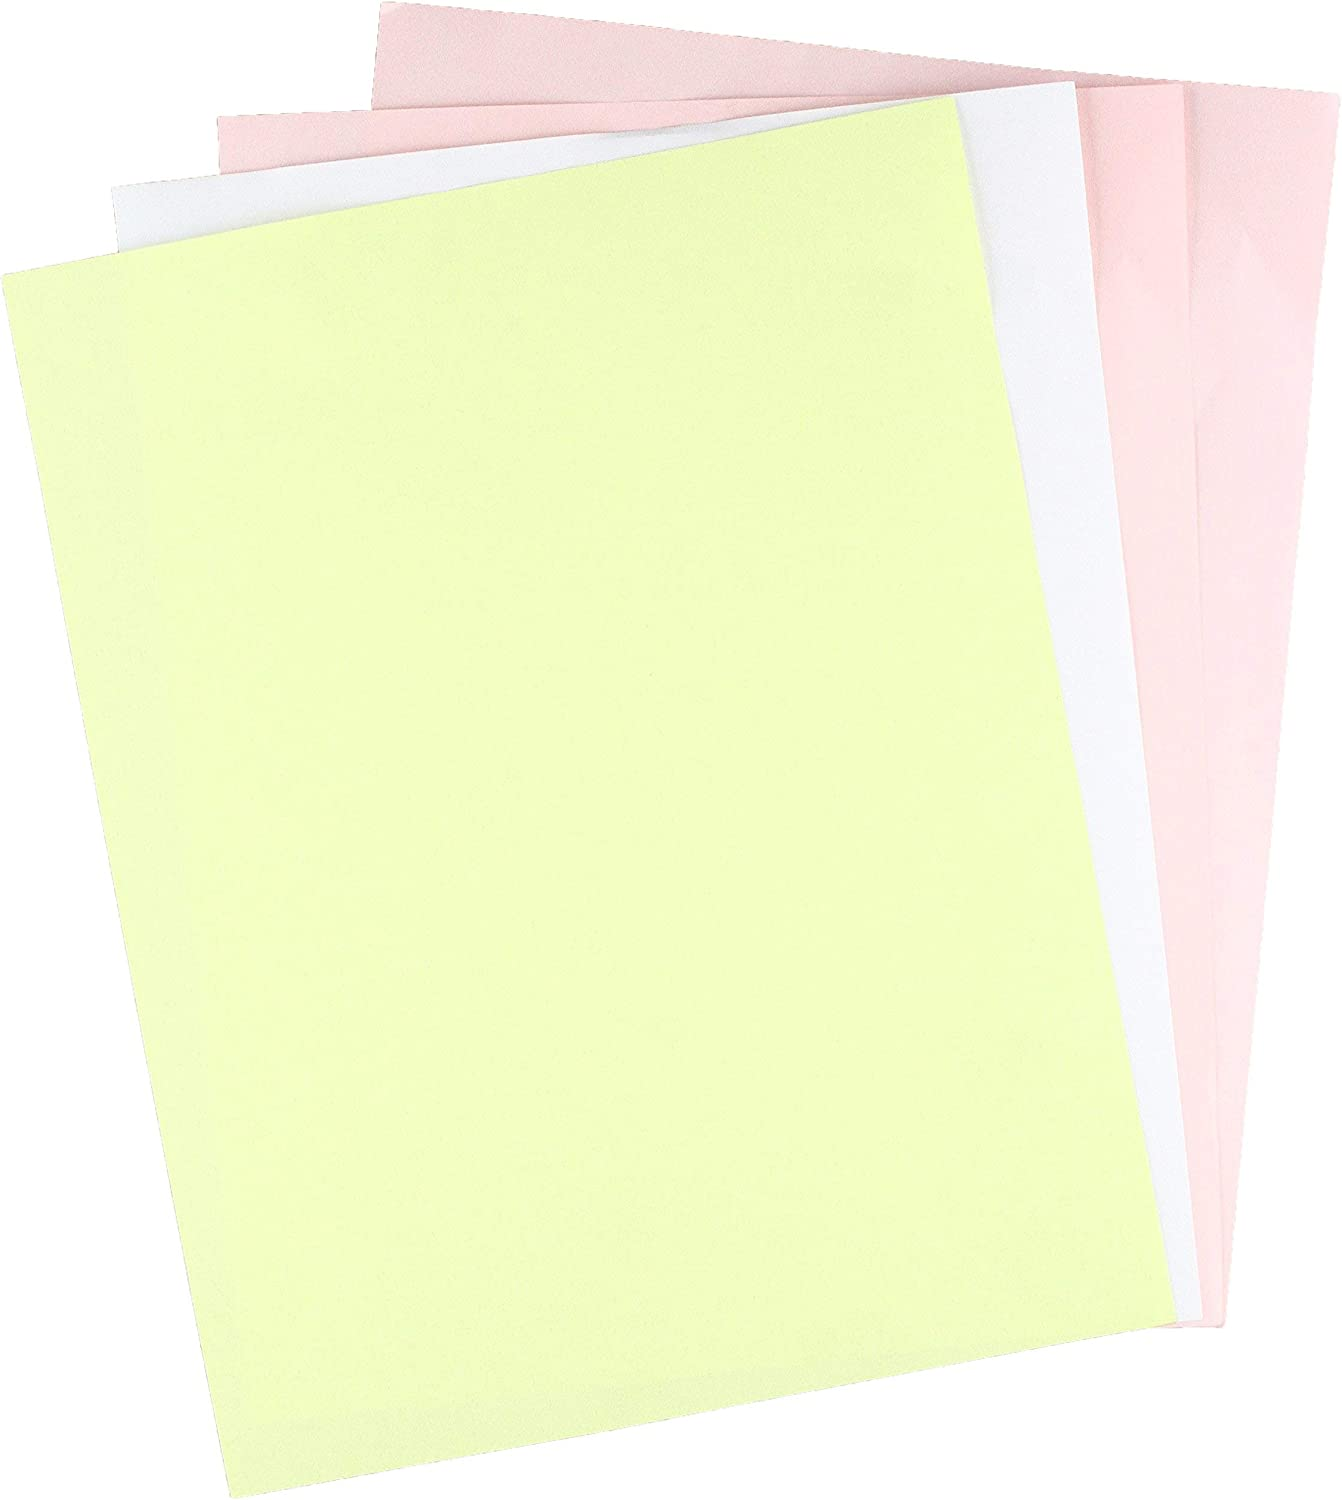 Appvion NCR Paper Reverse Superior - Sheets Carbonless Now free shipping Ultra-Cheap Deals NCR5900